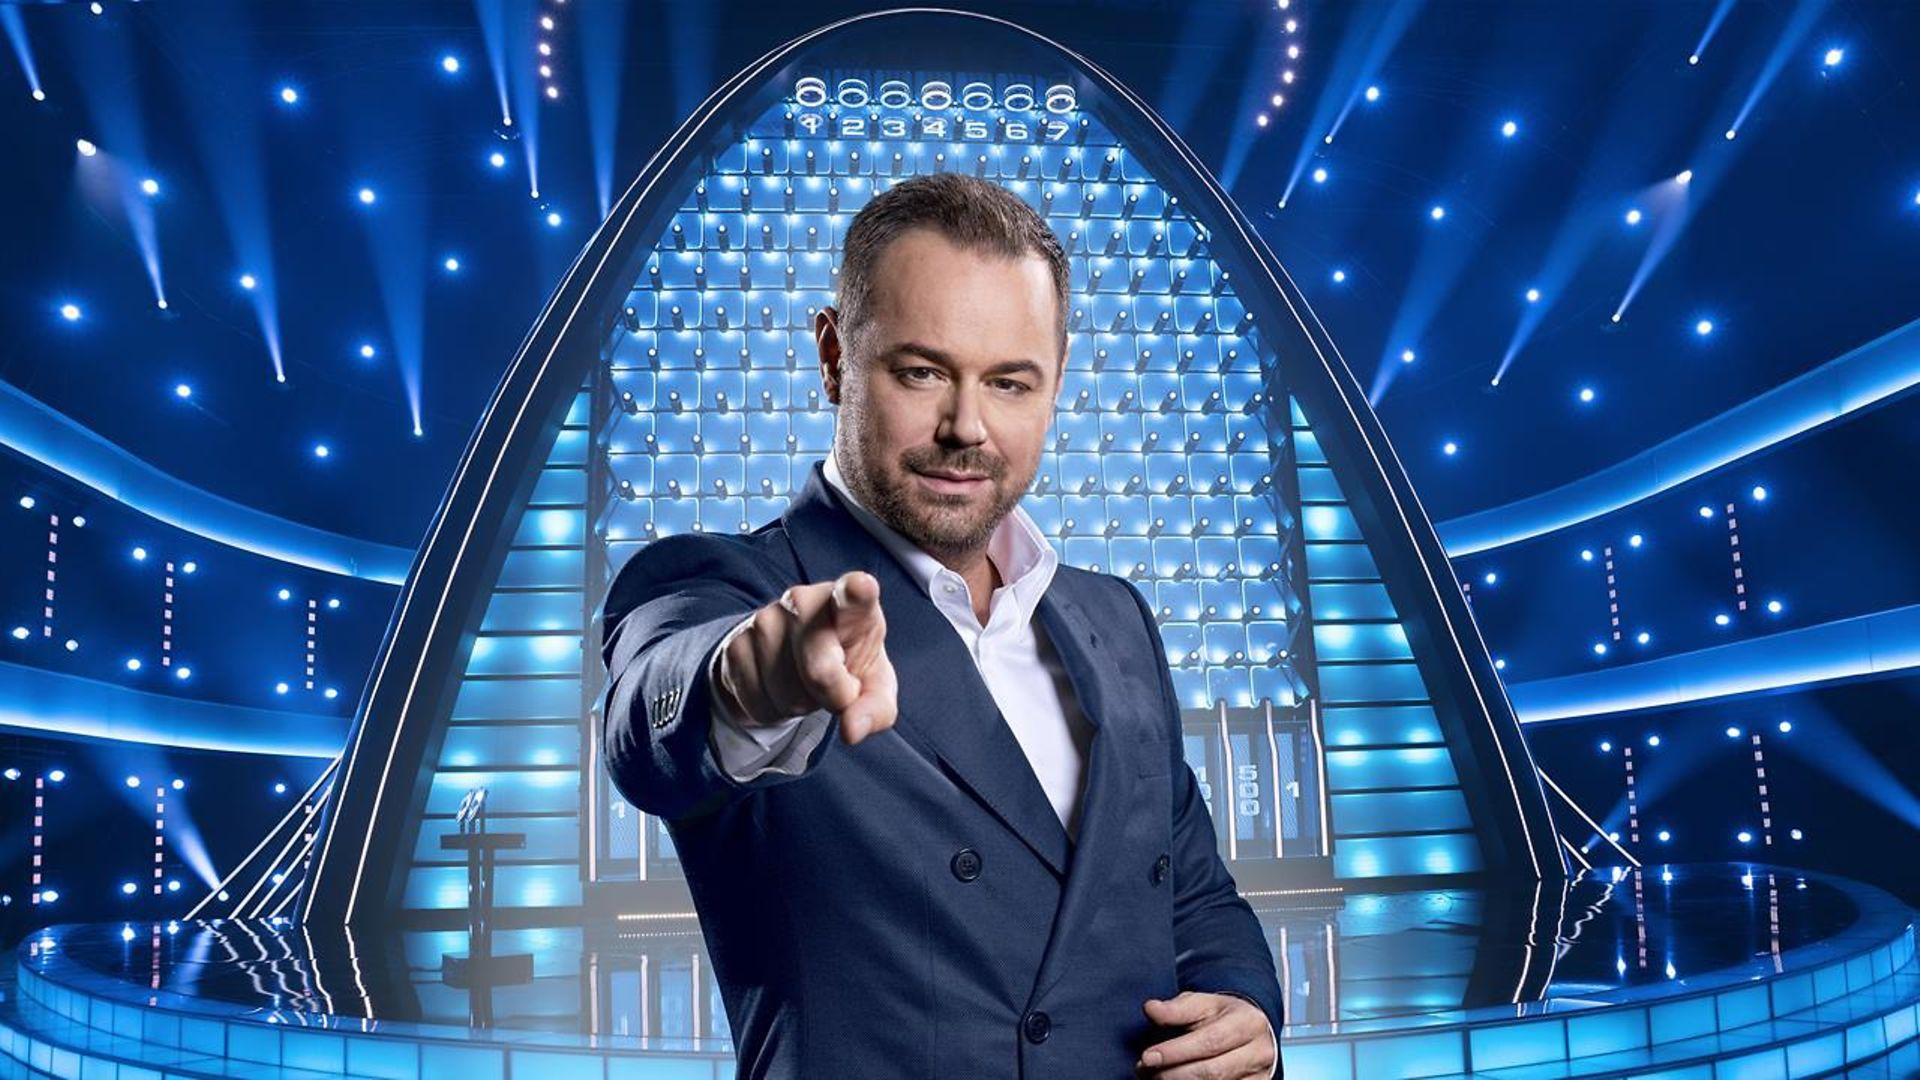 Danny Dyer On BBC's One The Wall - Credit: BBC